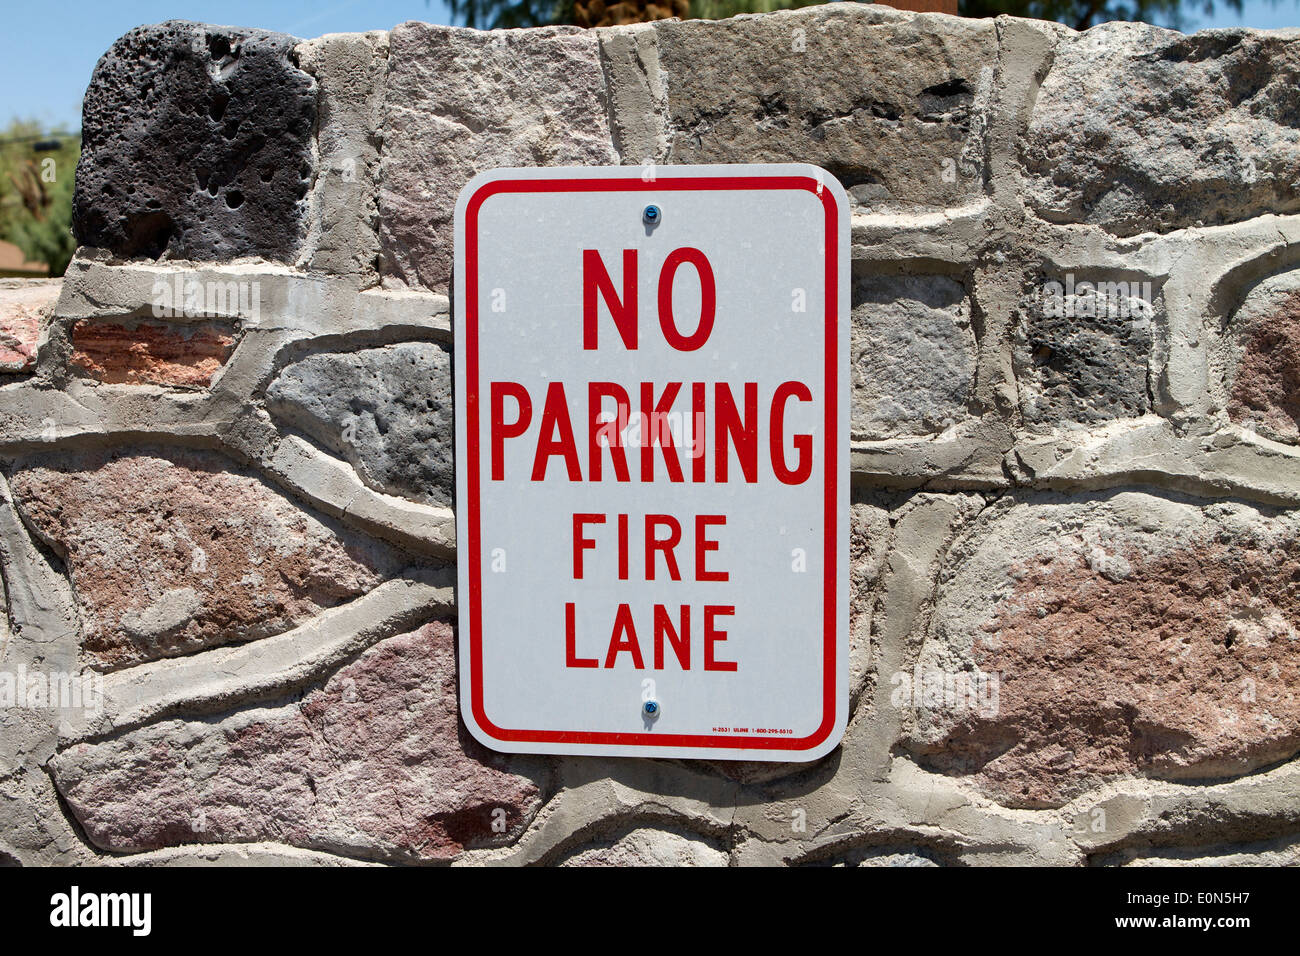 No Parking Fire Lane sign on a natural stonewallStock Photo